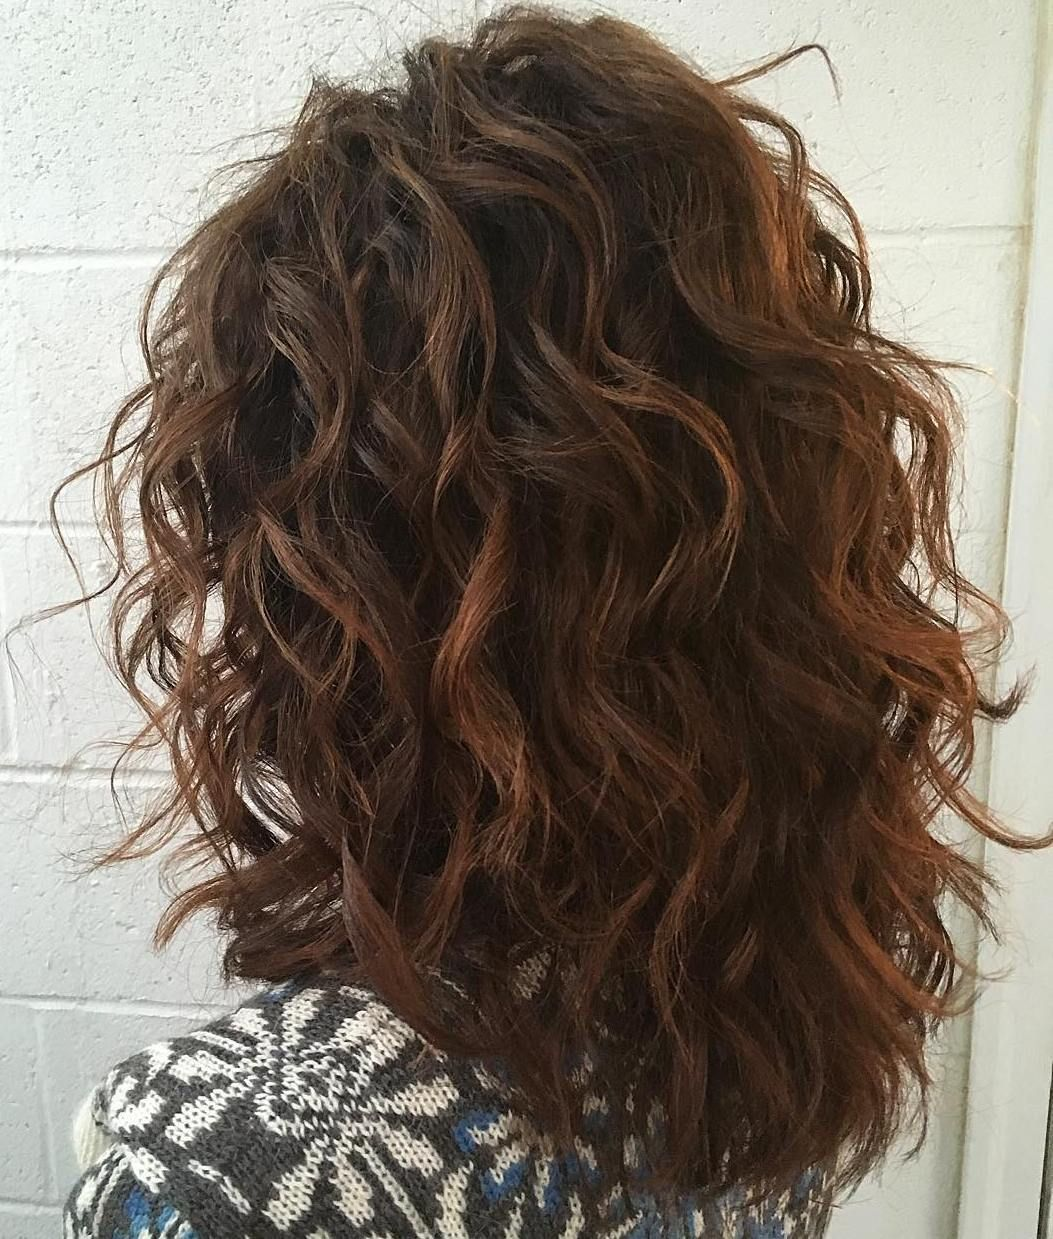 60 Most Magnetizing Hairstyles For Thick Wavy Hair Thick Wavy Hair Natural Wavy Hair Haircut For Thick Hair